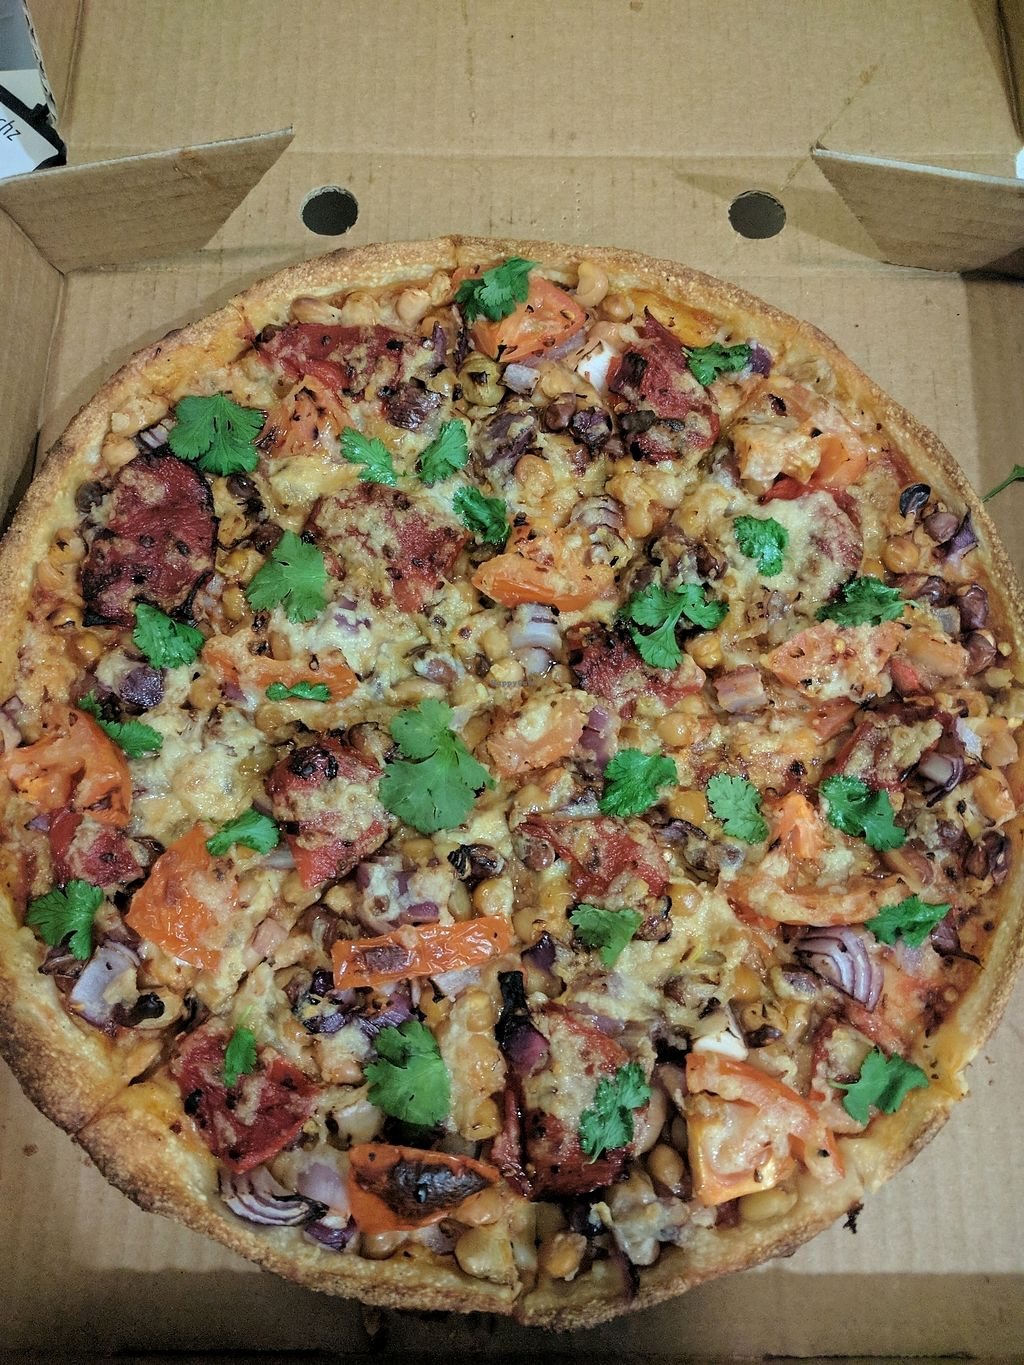 """Photo of Pizza Max  by <a href=""""/members/profile/VeganSoapDude"""">VeganSoapDude</a> <br/>Farmer's market with vegan cheese  <br/> September 27, 2017  - <a href='/contact/abuse/image/101821/309201'>Report</a>"""